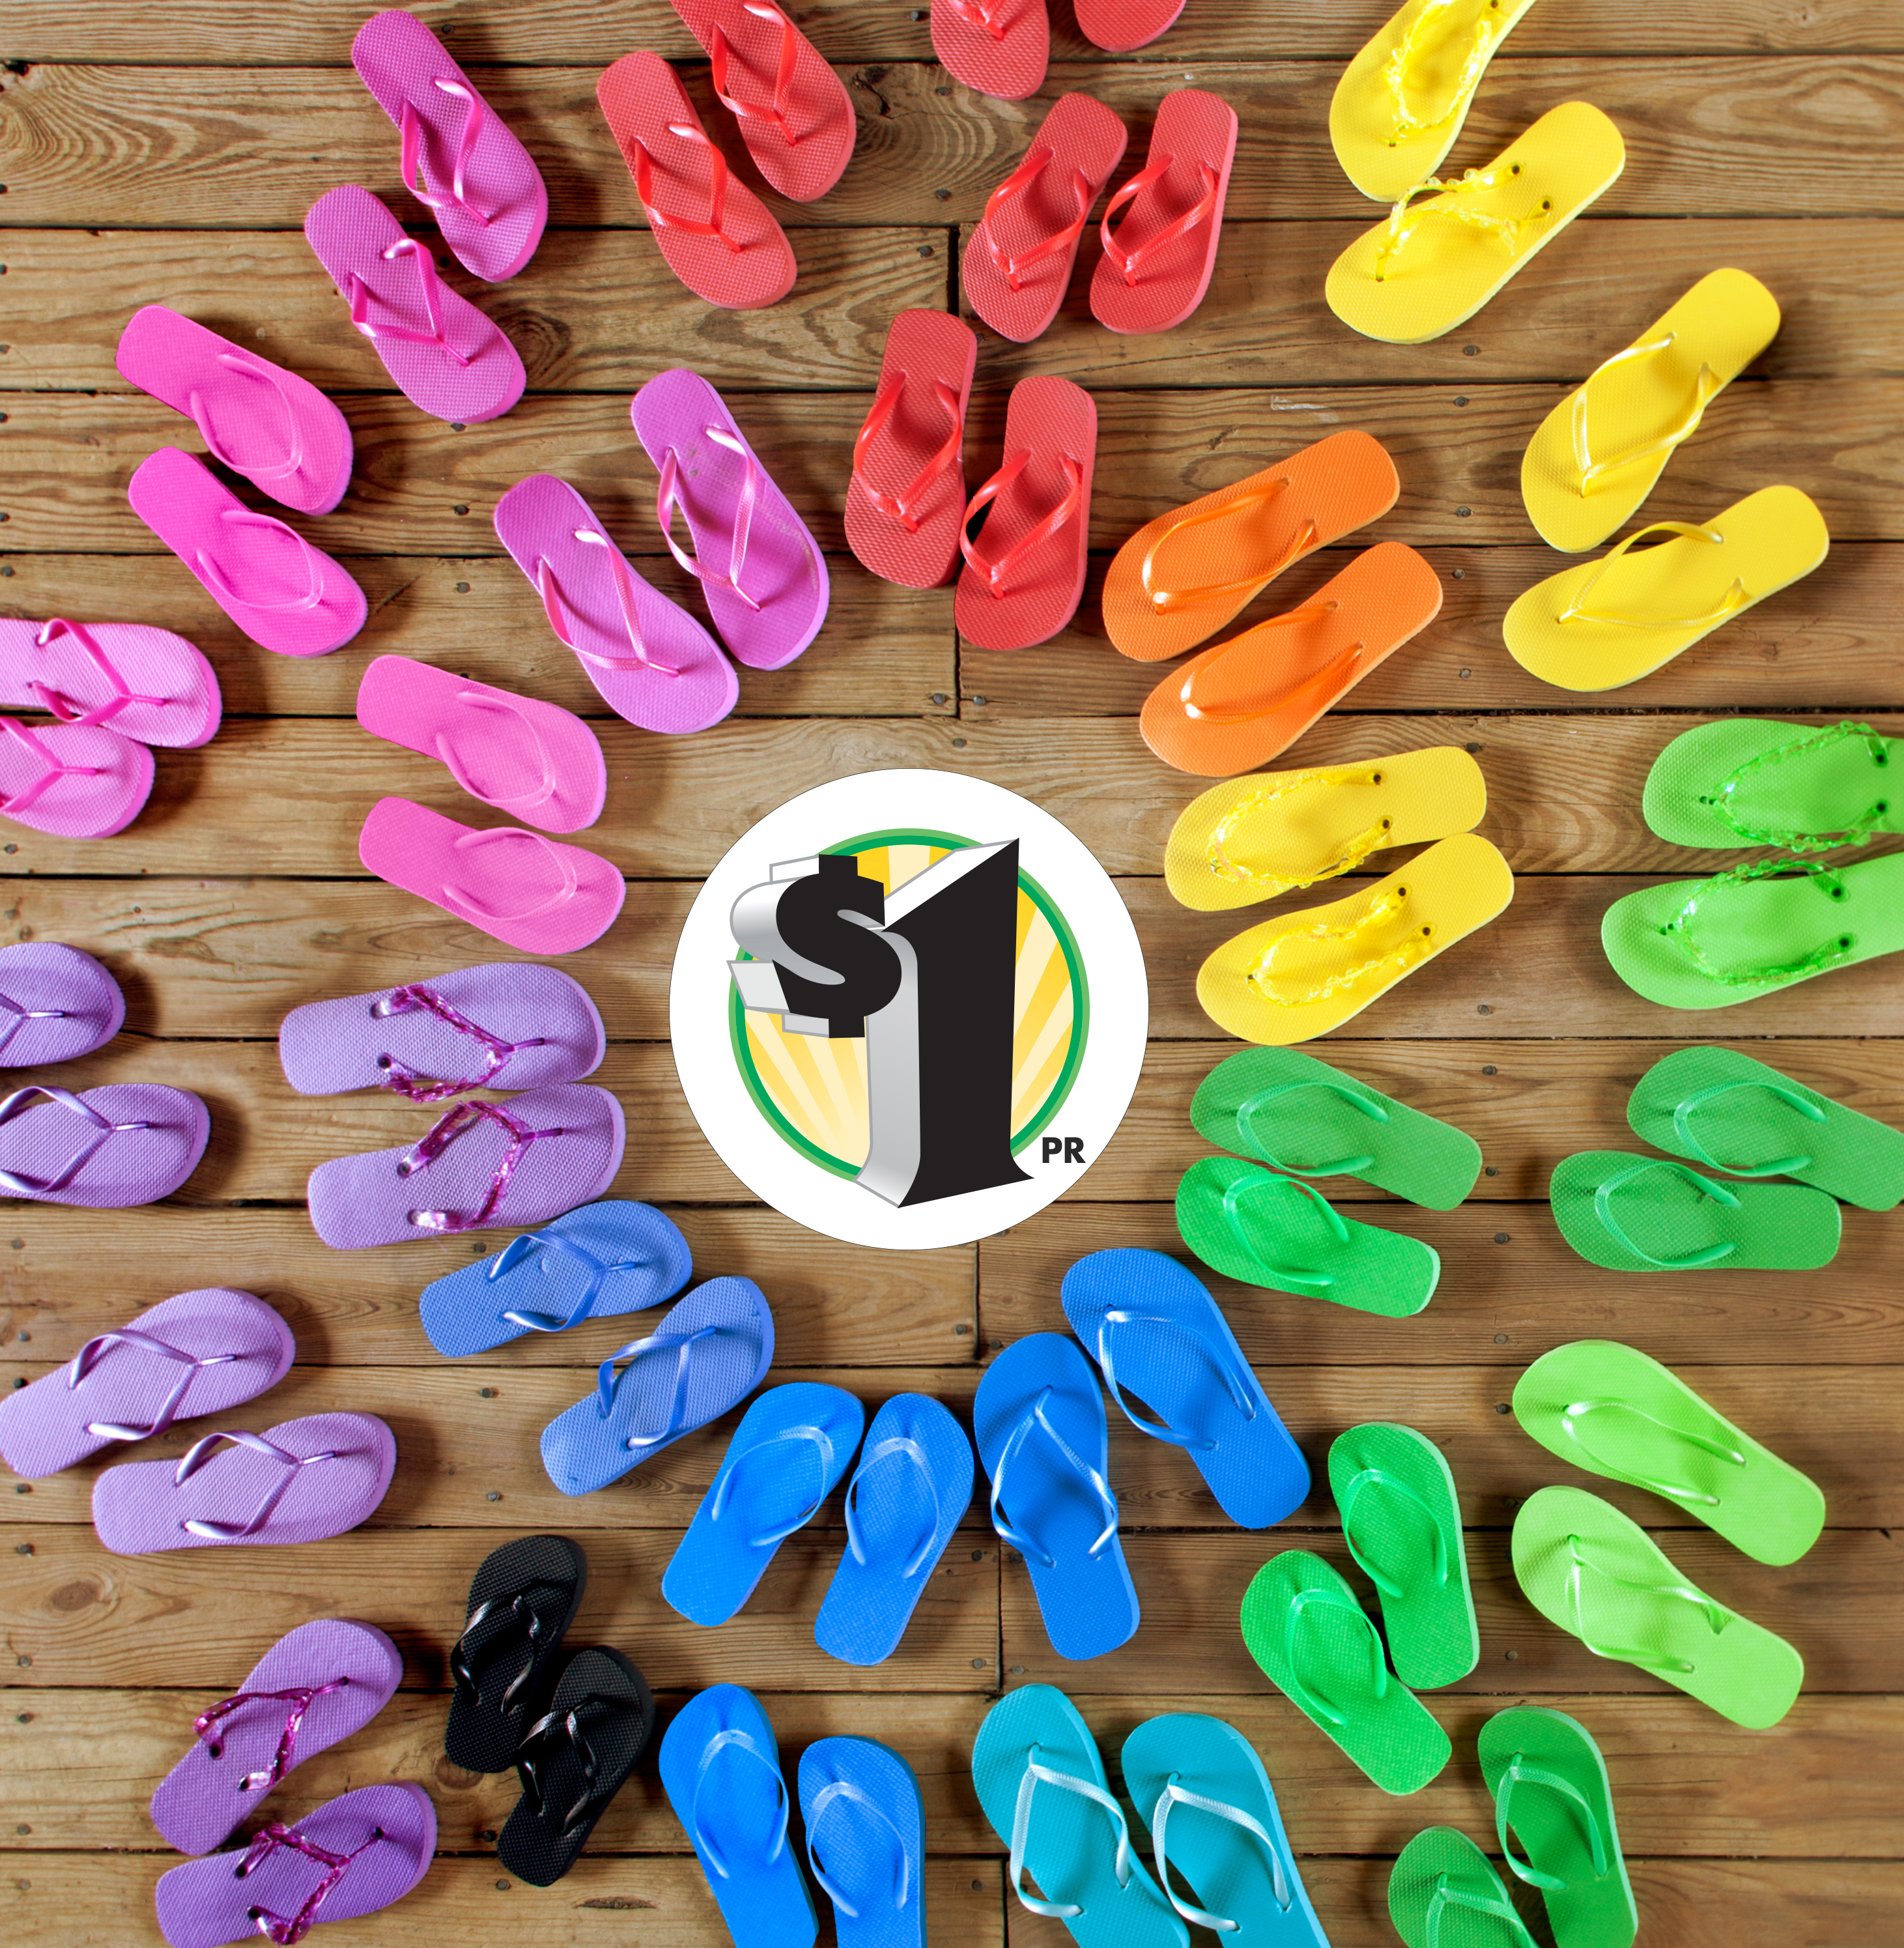 #ad #DTSneakPeek Dollar Tree Summer Fun Flip Flops for only $1